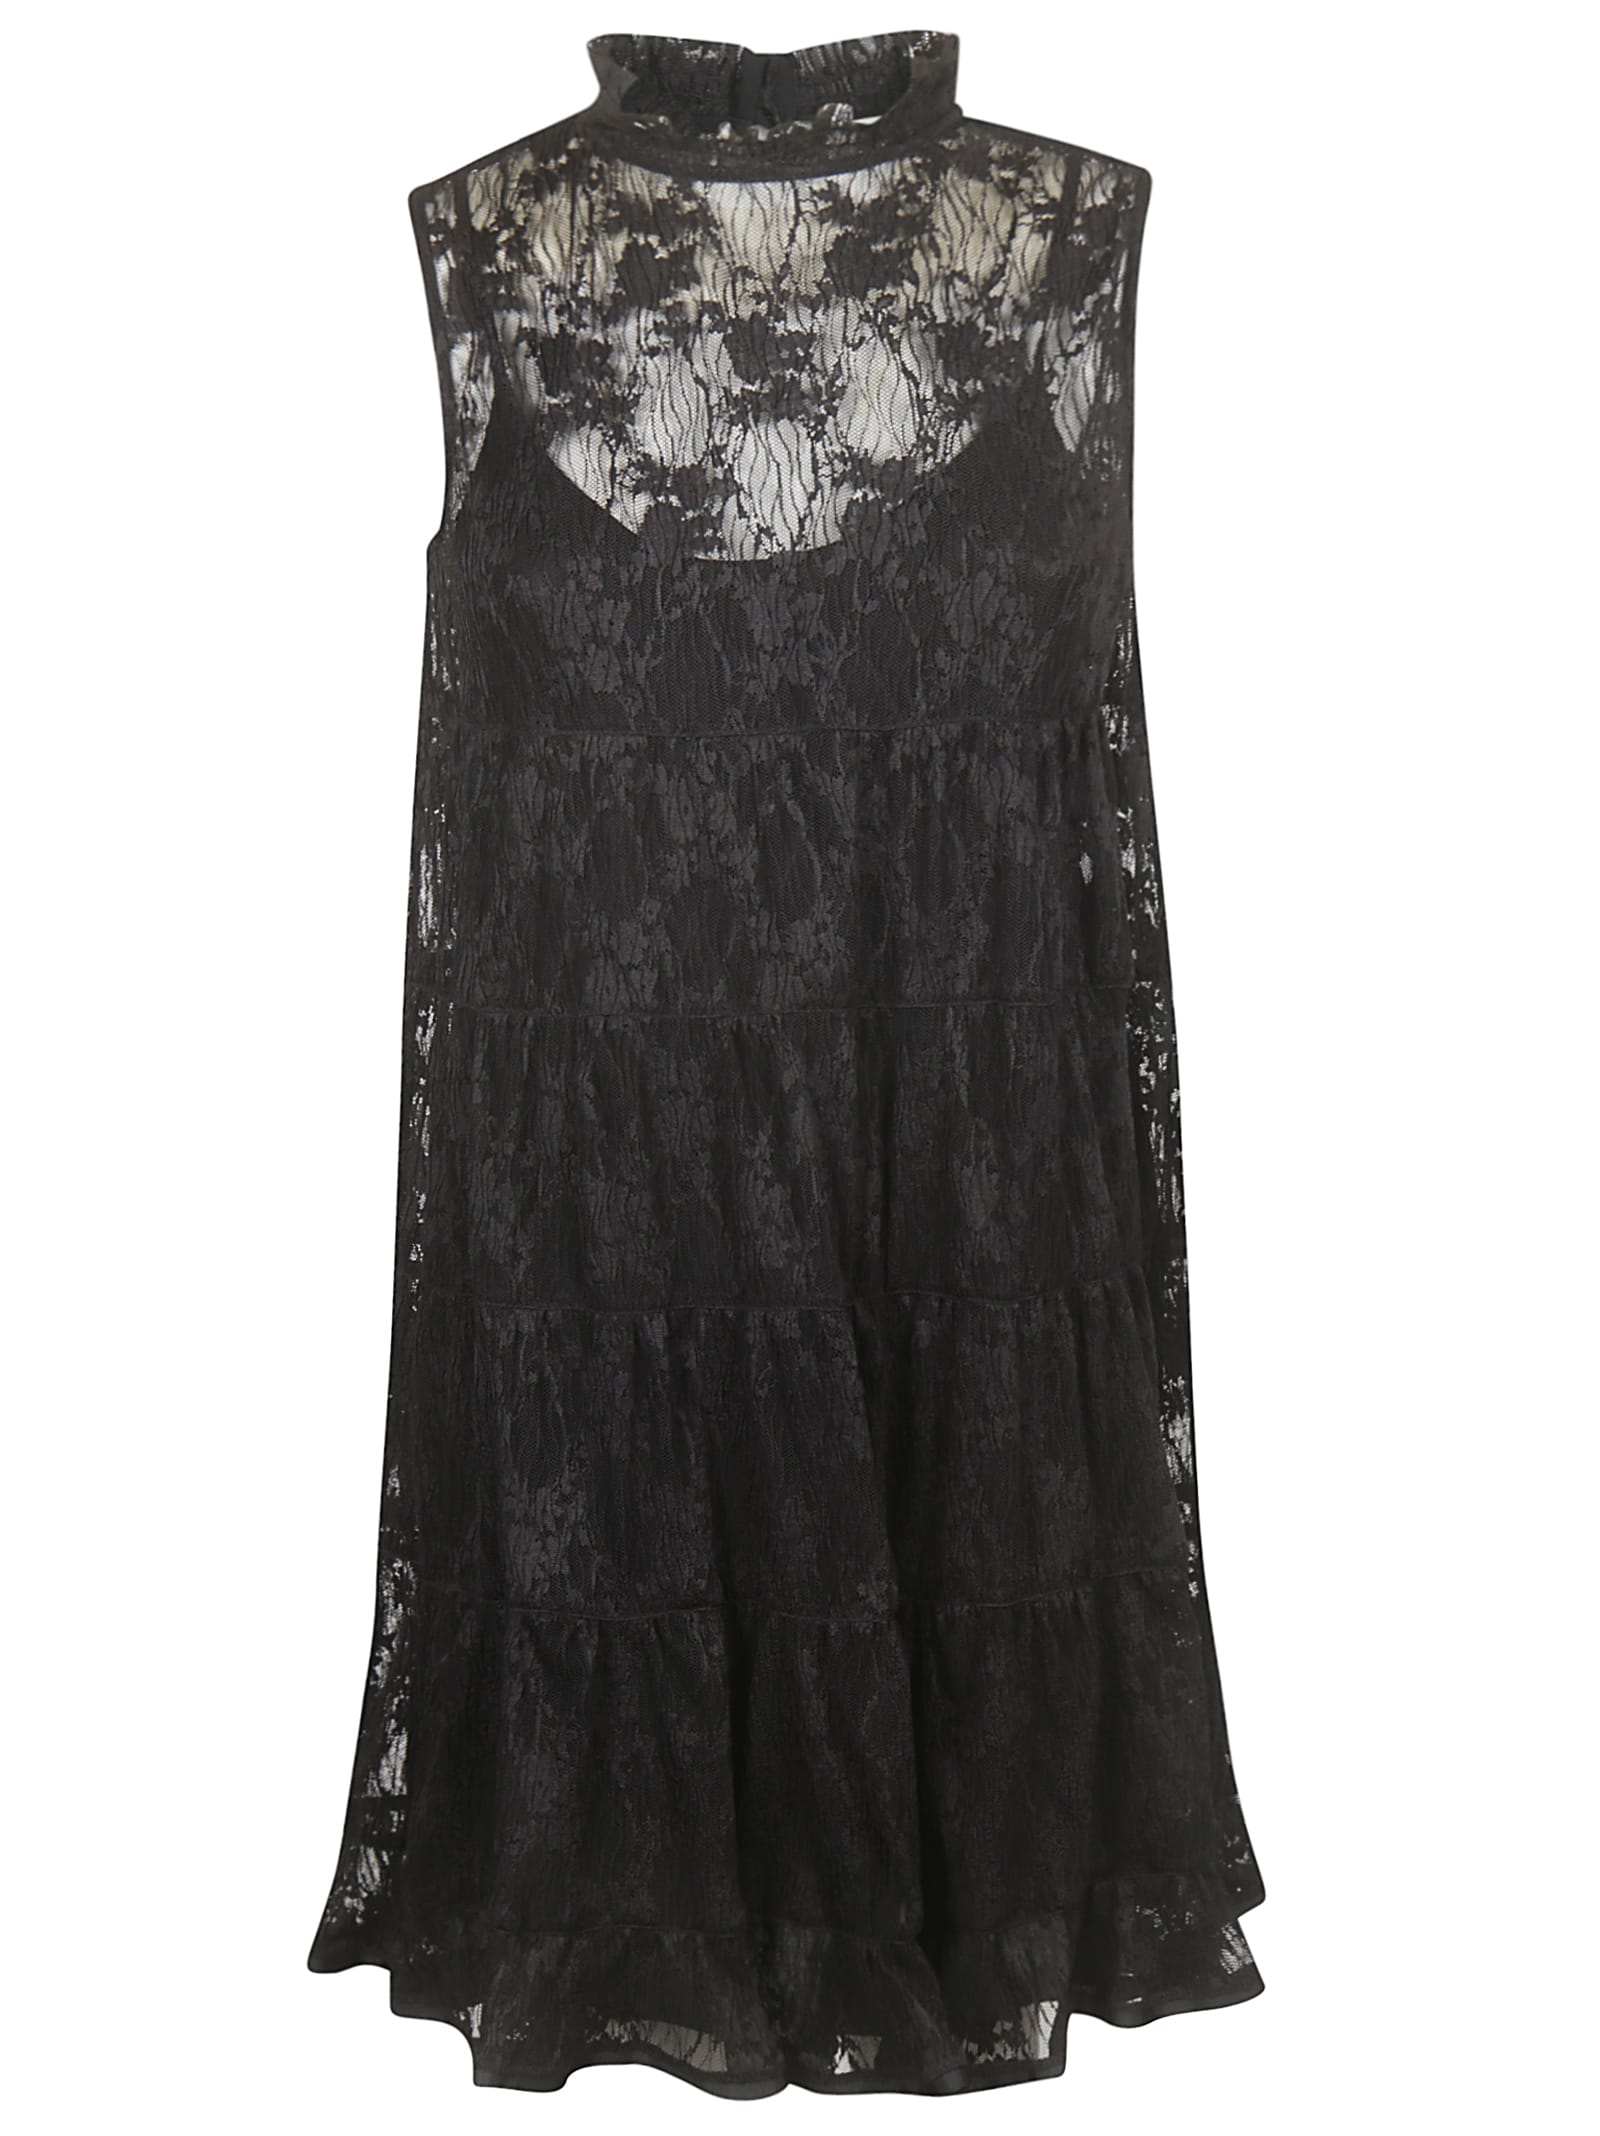 Buy See by Chloé Laced Sleeveless Dress online, shop See by Chloé with free shipping